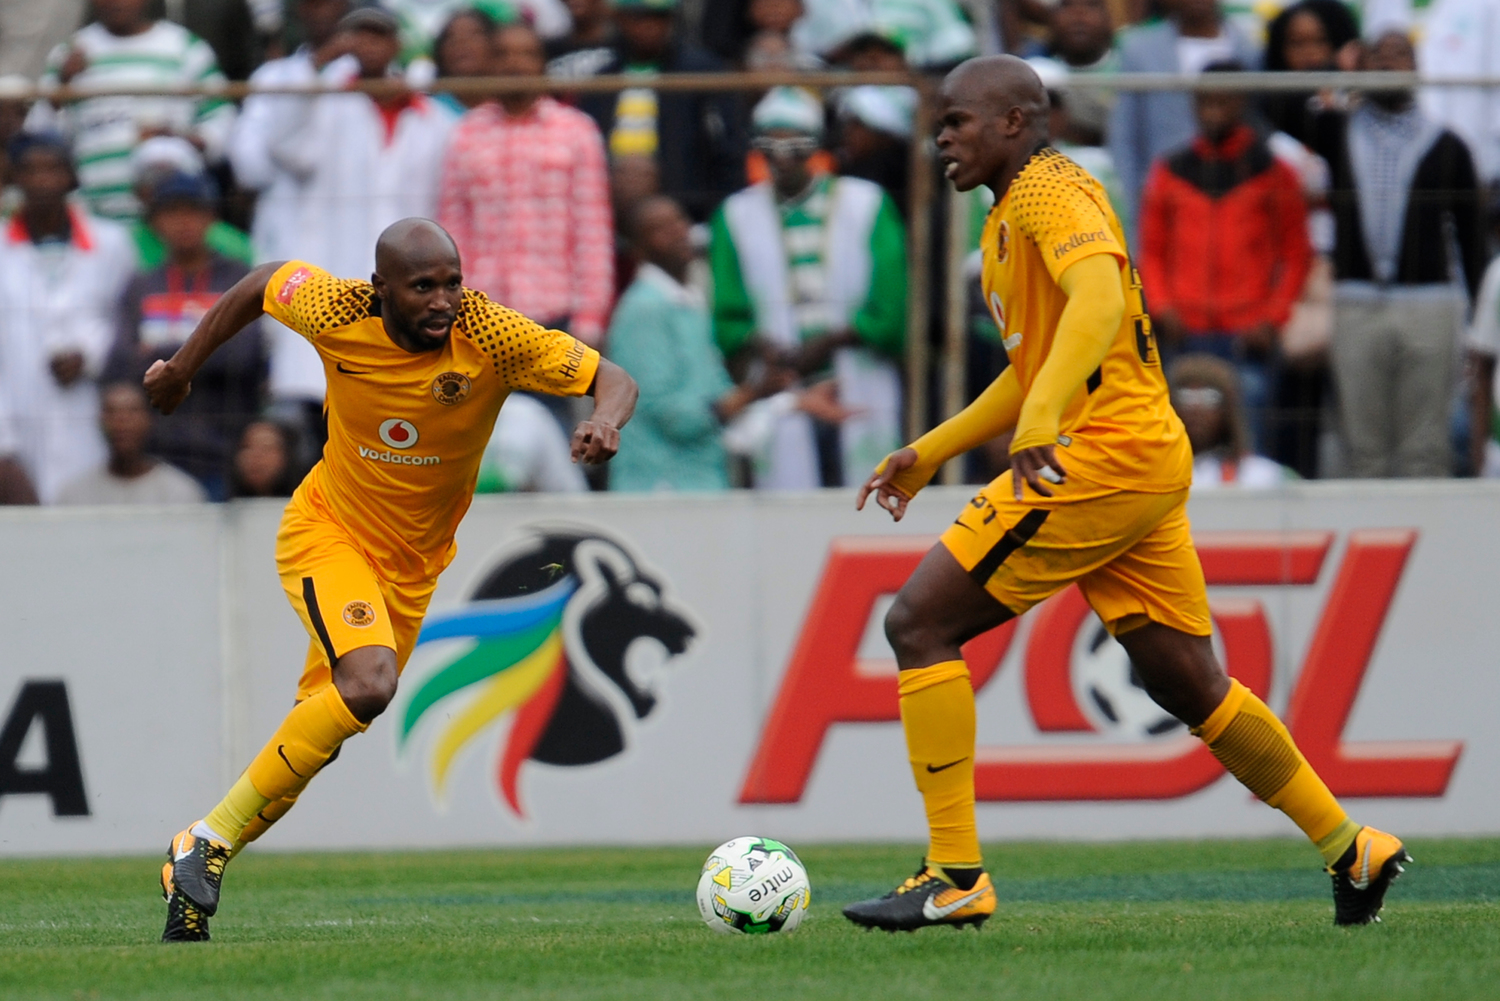 BLOEMFONTEIN, SOUTH AFRICA - AUGUST 20: Ramahlwe Mphahlele of Kaizer Chiefs during the Absa Premiership match between Bloemfontein Celtic and Kaizer Chiefs at Free State Stadium on August 20, 2017 in Bloemfontein, South Africa. (Photo by Charle Lombard/Gallo Images)